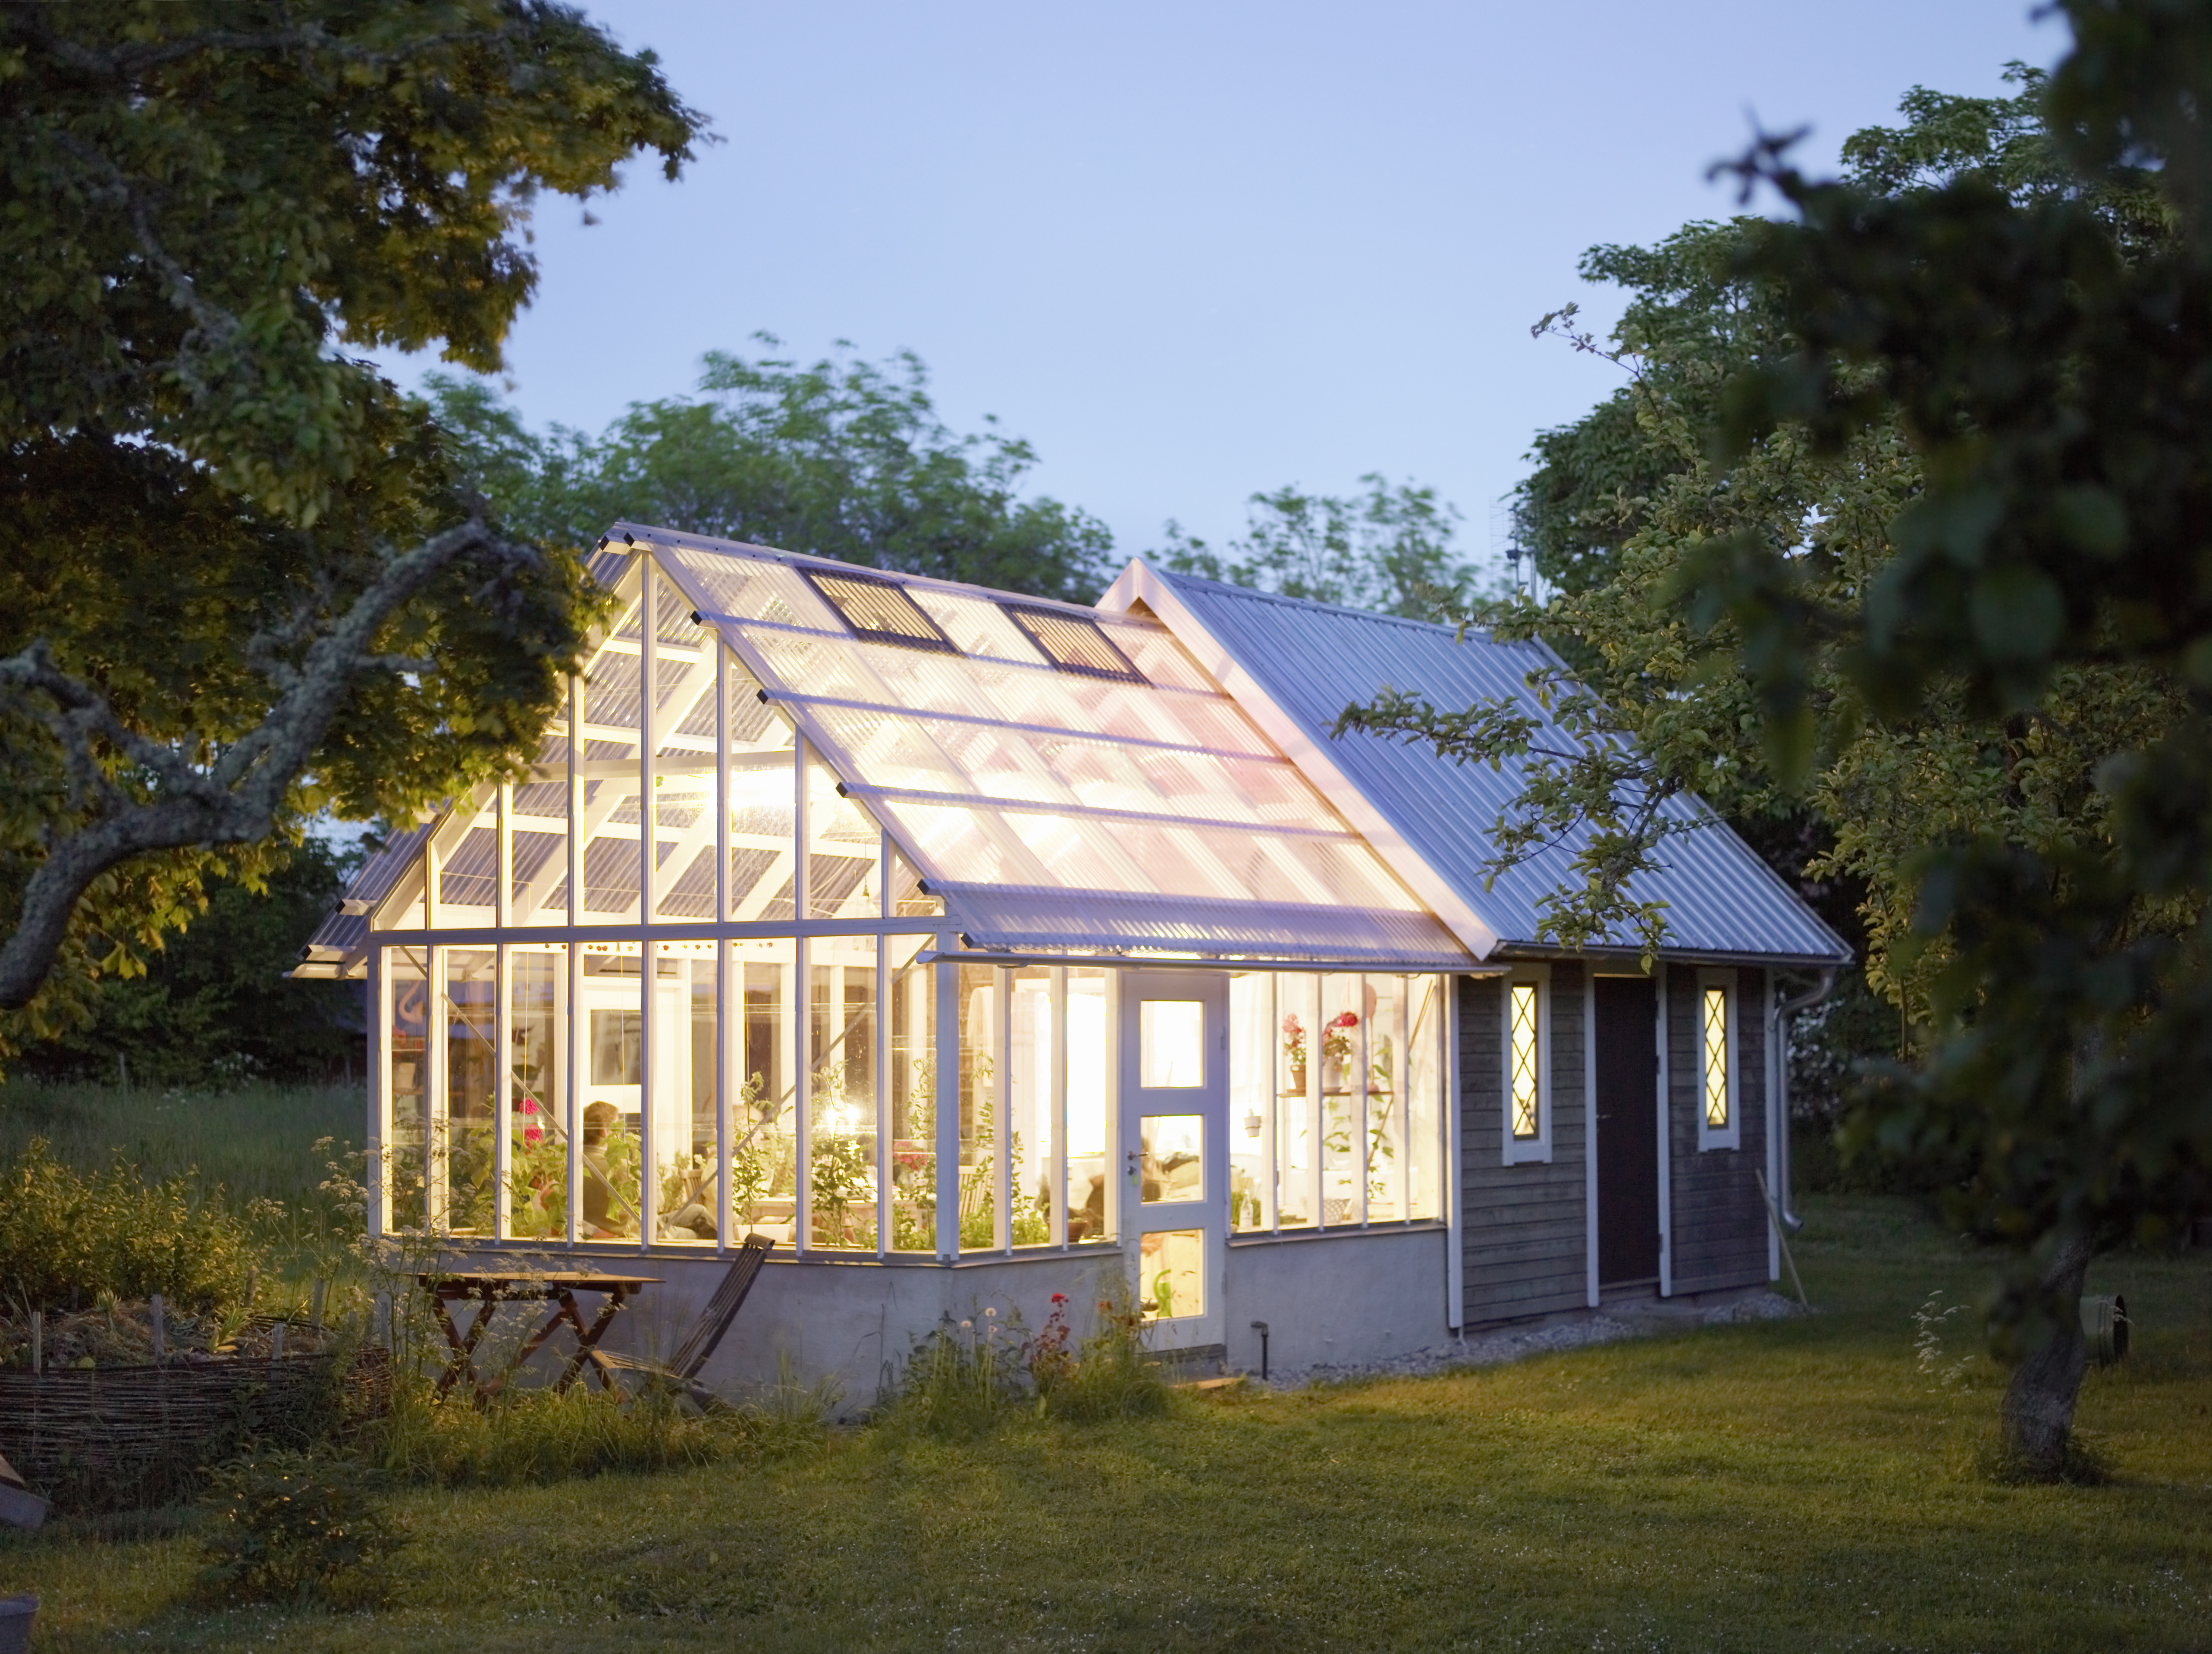 A house with a greenhouse